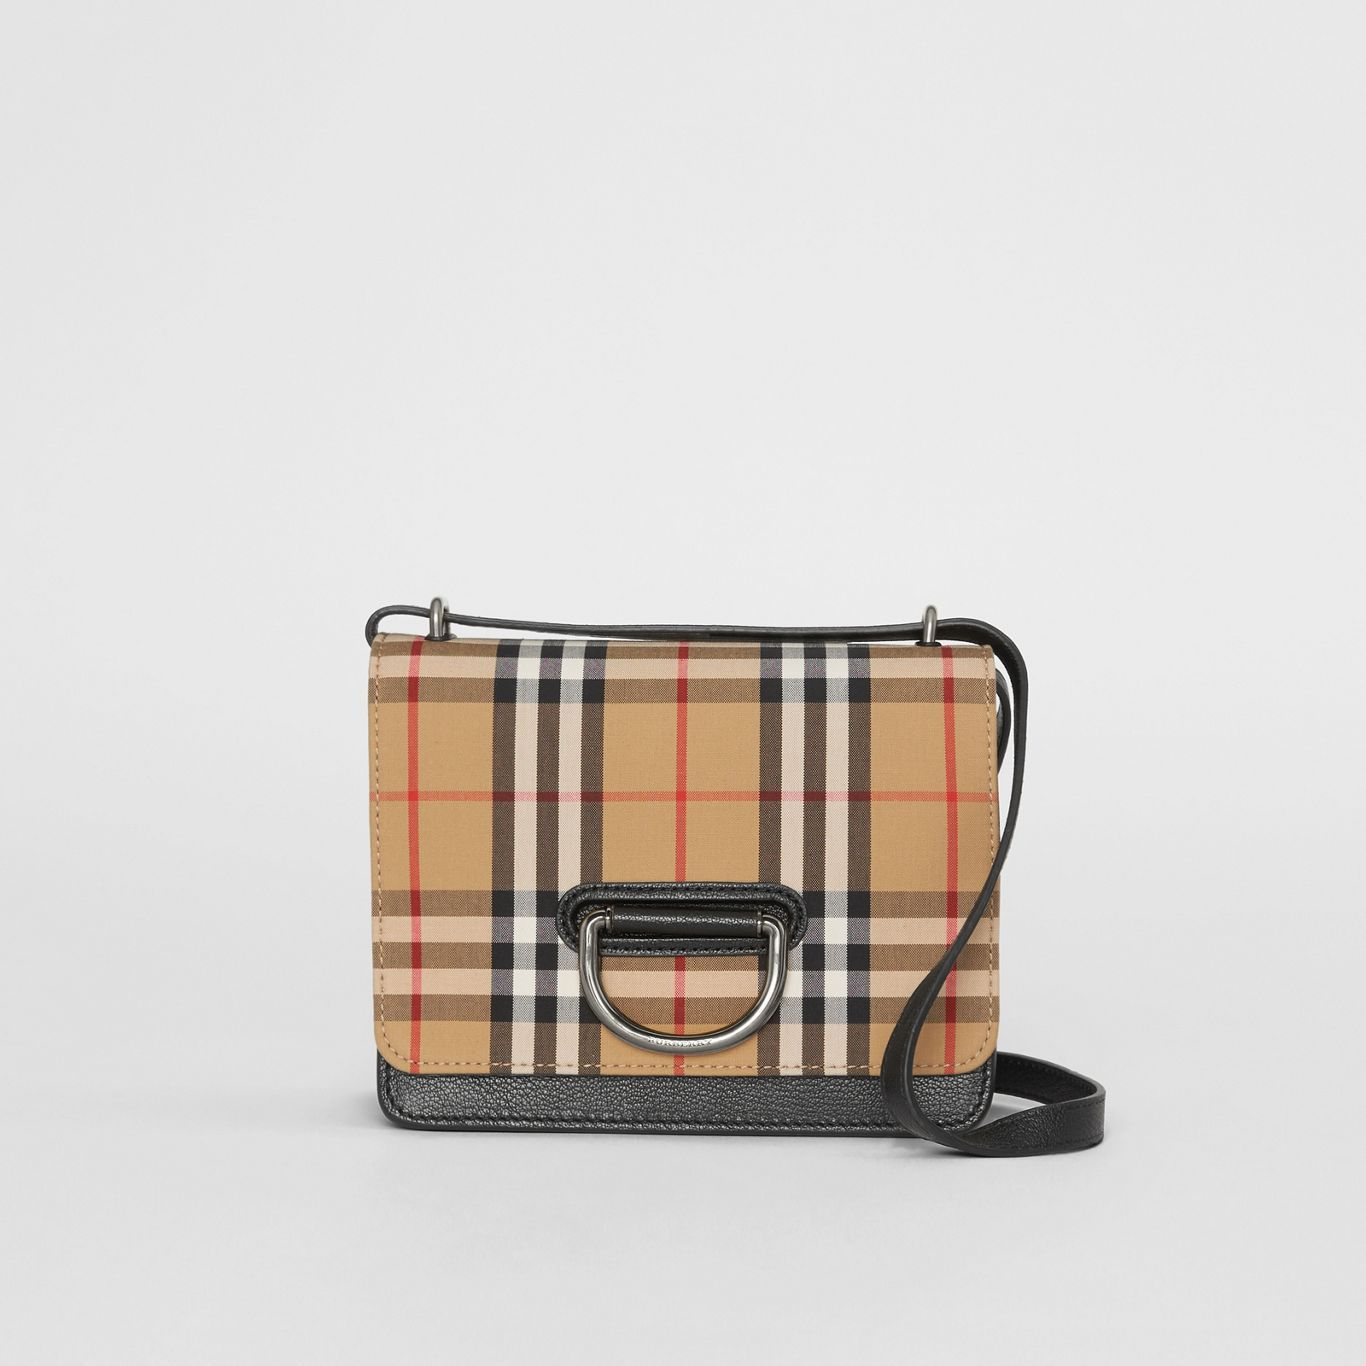 27636fdc5fa8 The Small Vintage Check and Leather D-ring Bag in Black/antique ...